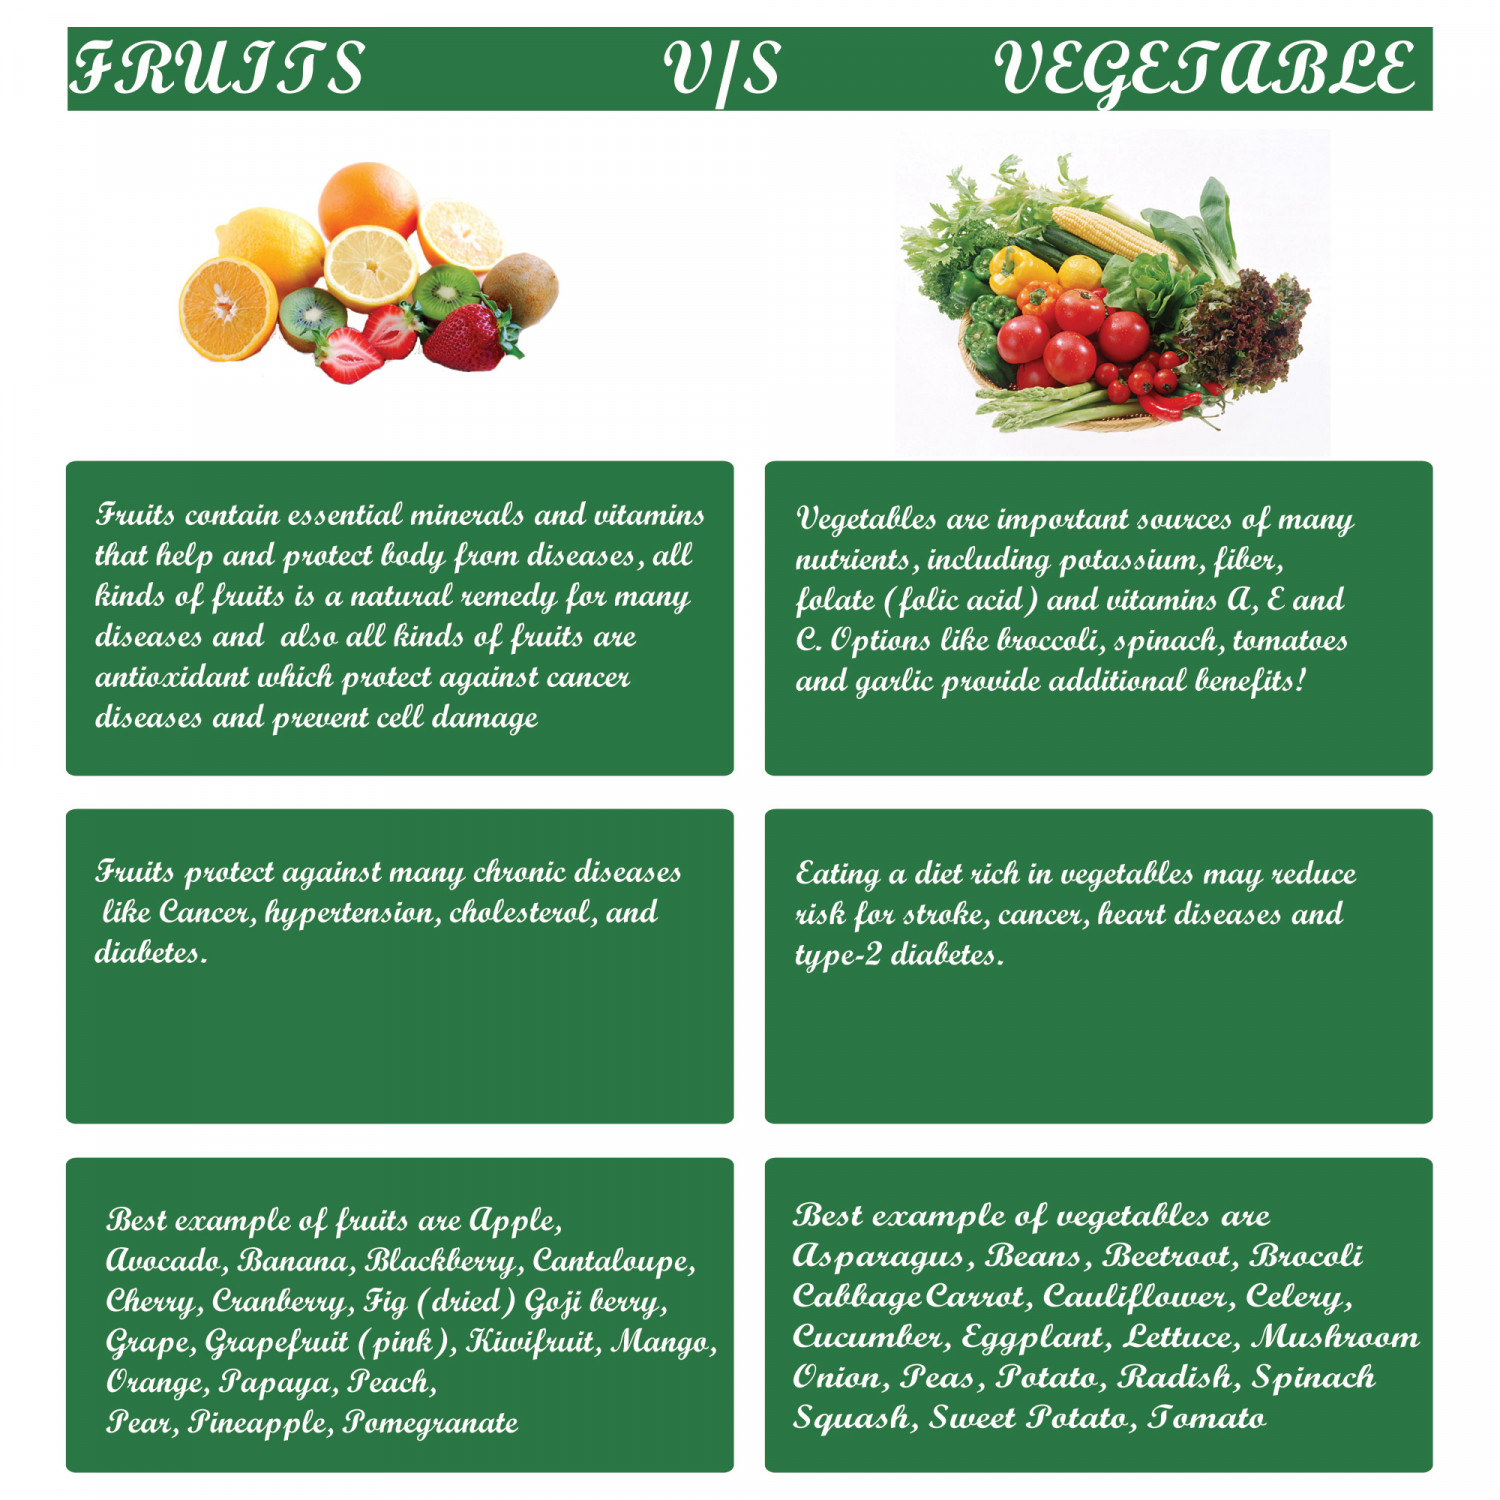 fruits v/s vegetables | visual.ly